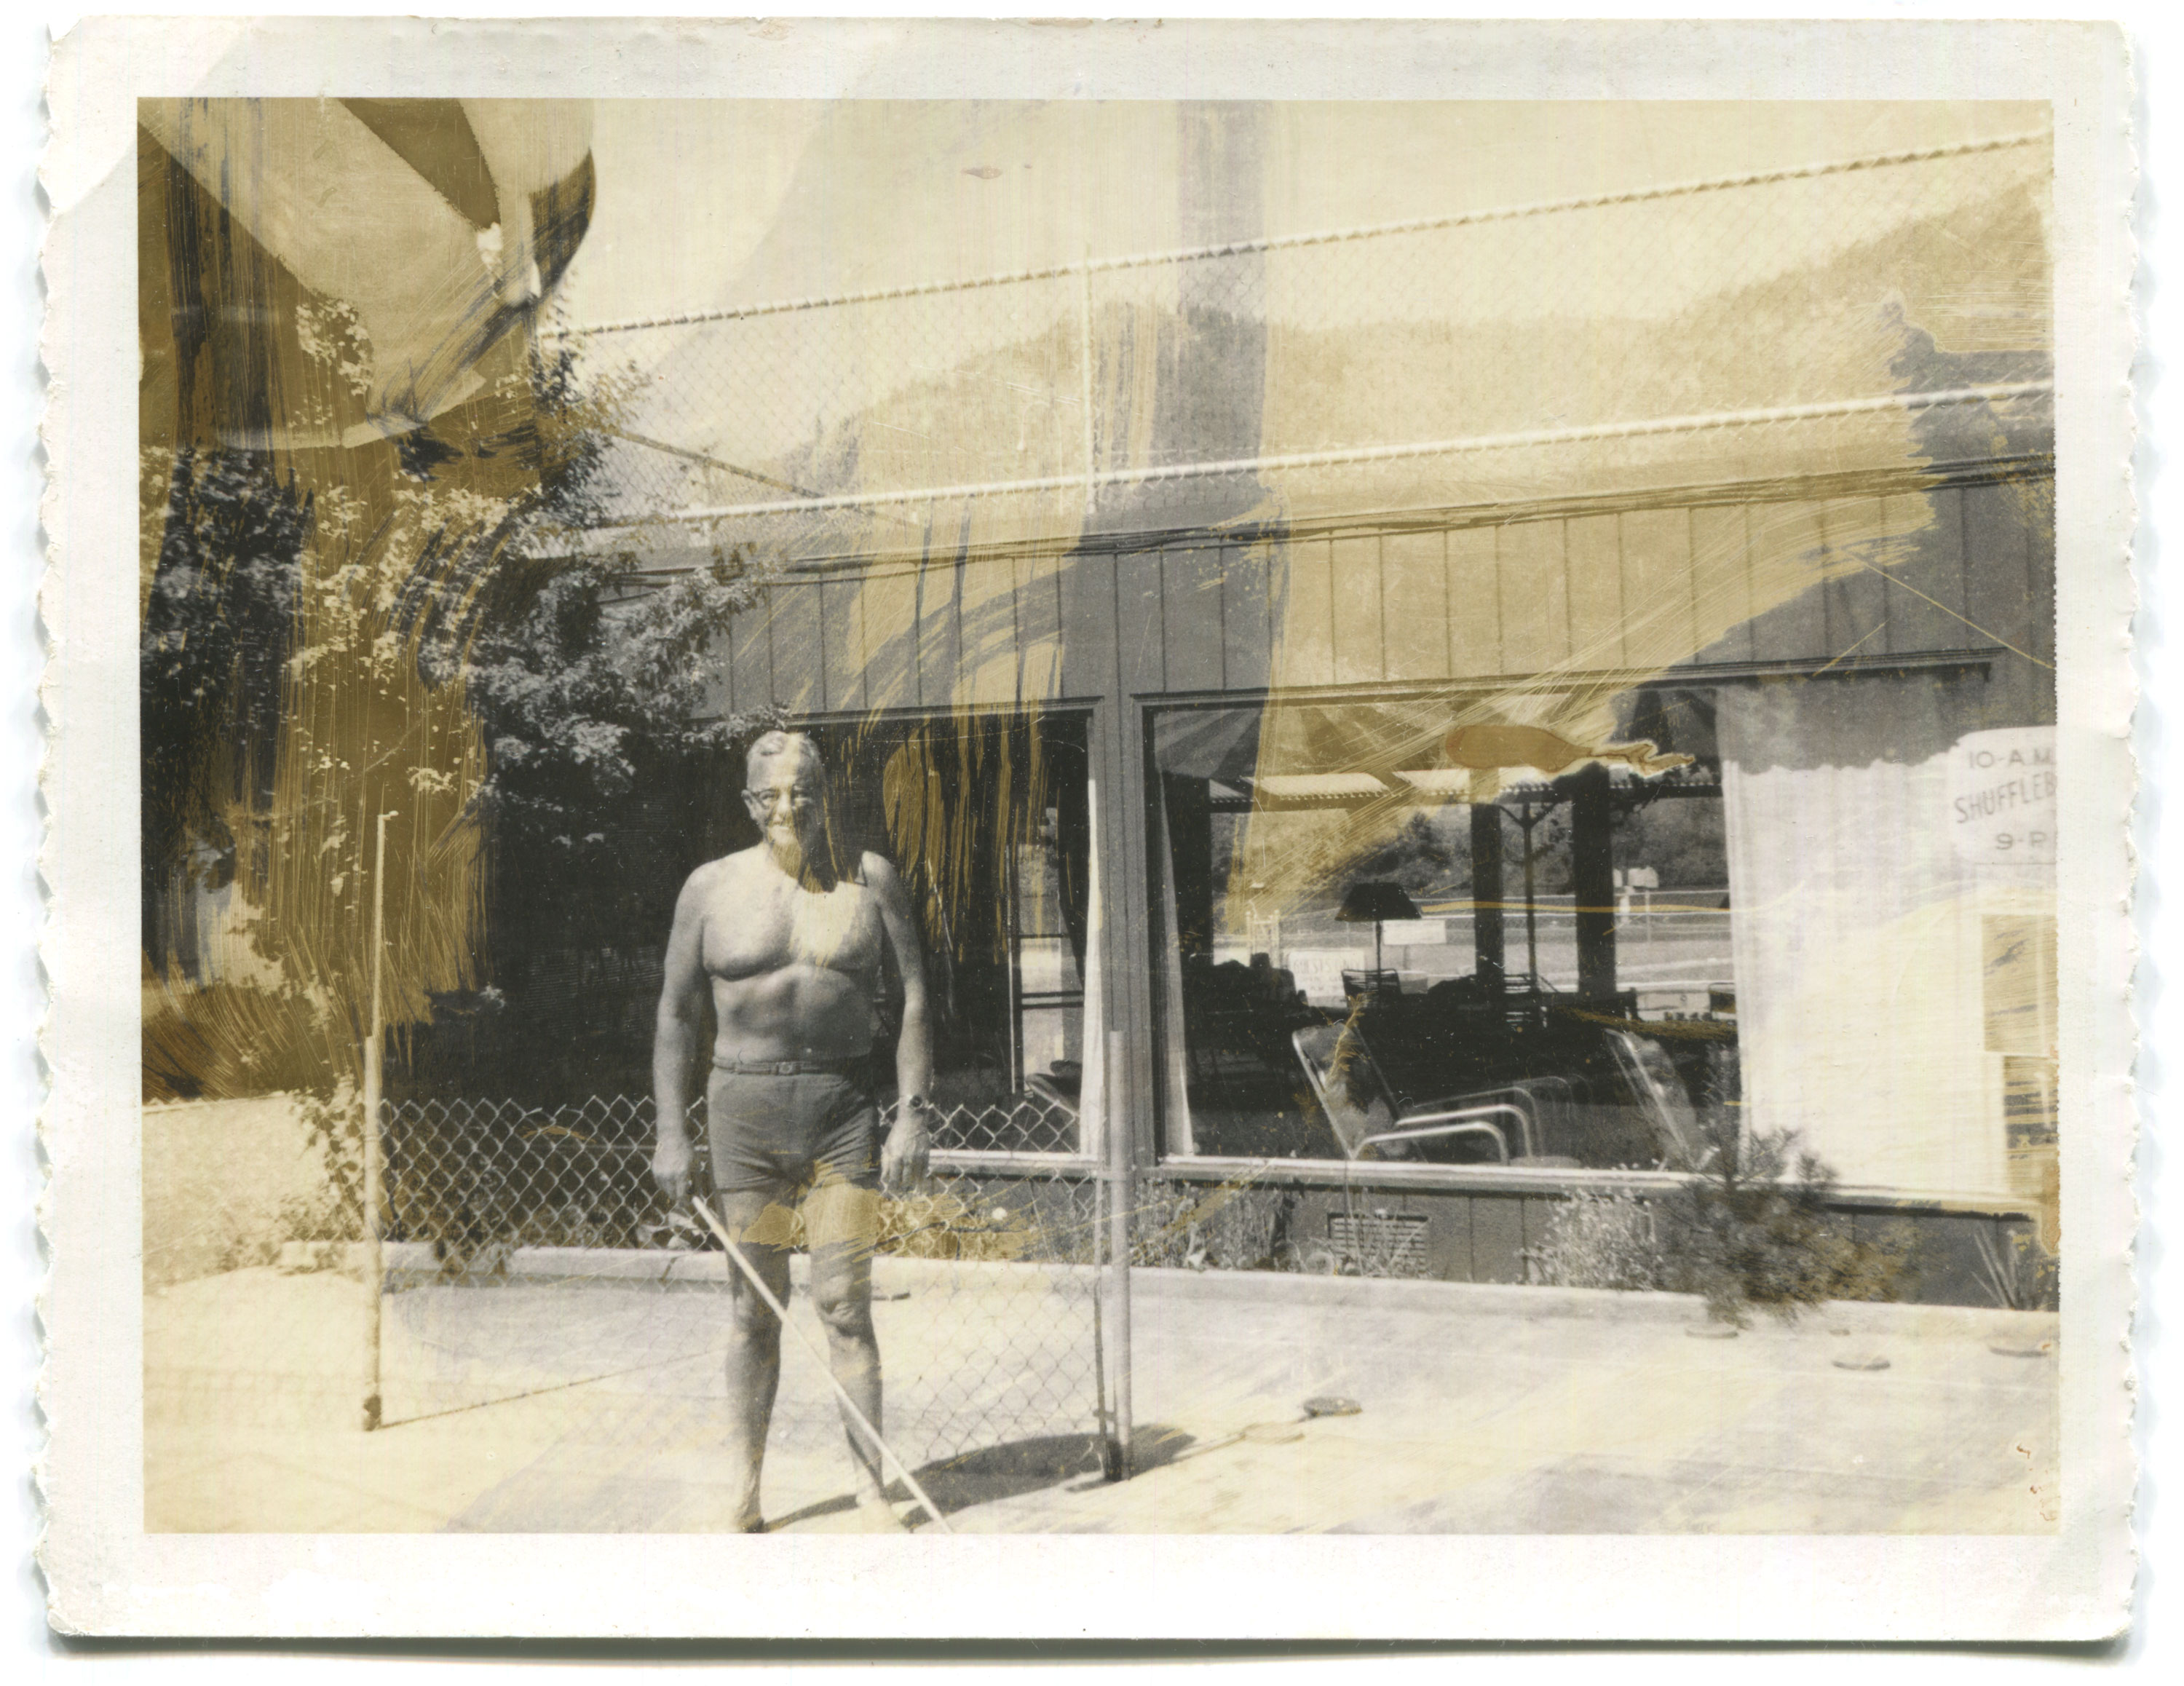 Damaged black and white photo of an older shirtless man playing shuffleboard at a motel